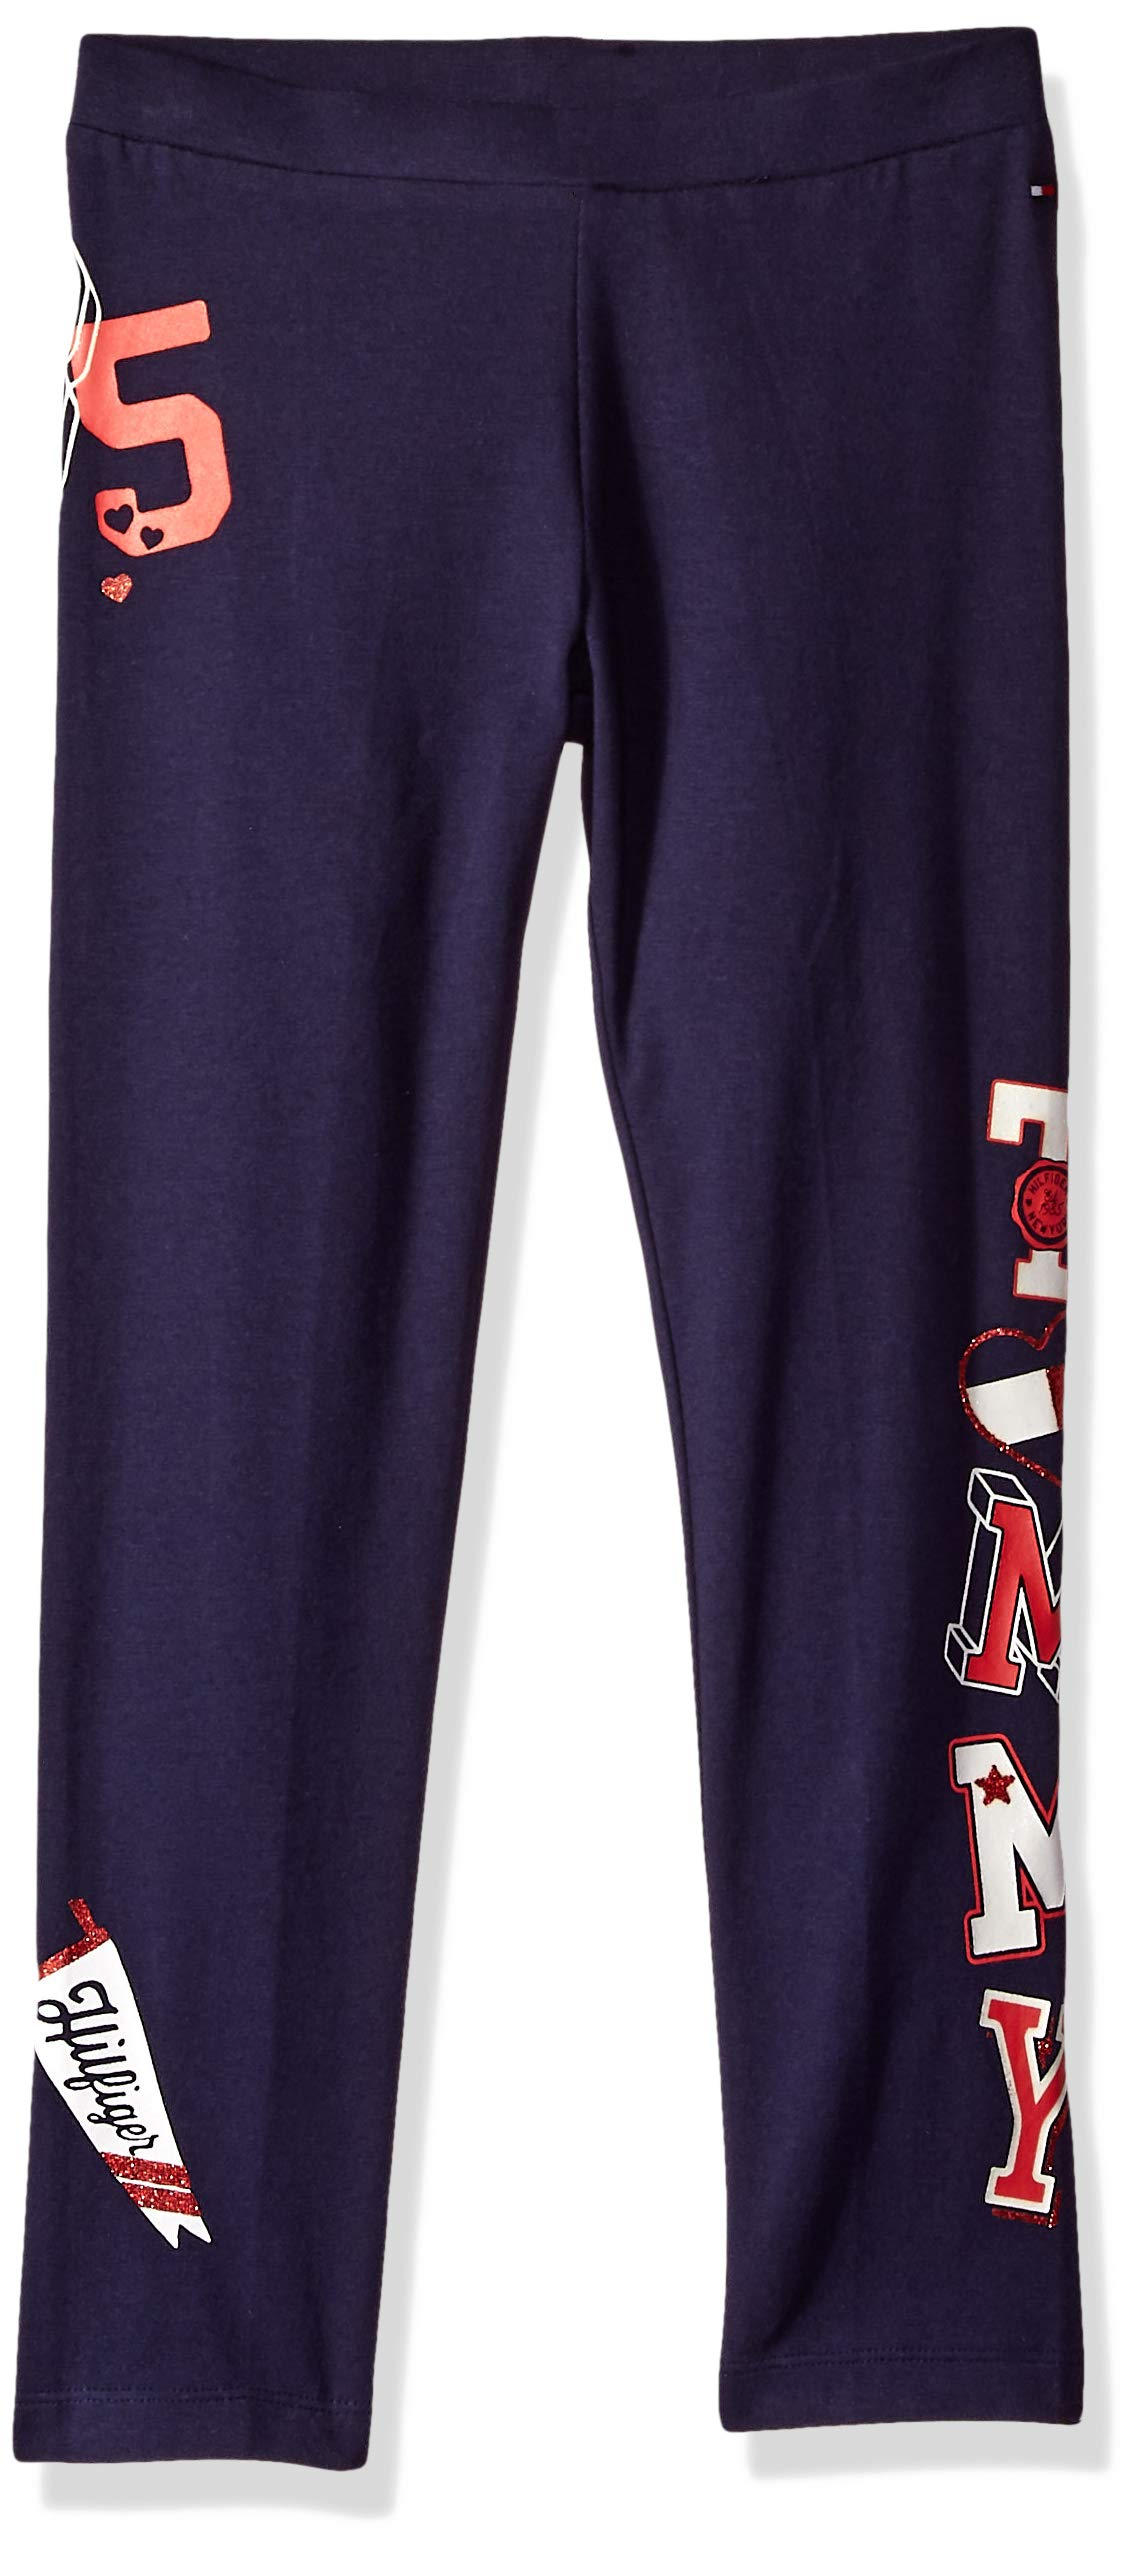 Tommy Hilfiger Girls' Adaptive Leggings with Elastic Waist, evening blue X-Small by Tommy Hilfiger (Image #1)